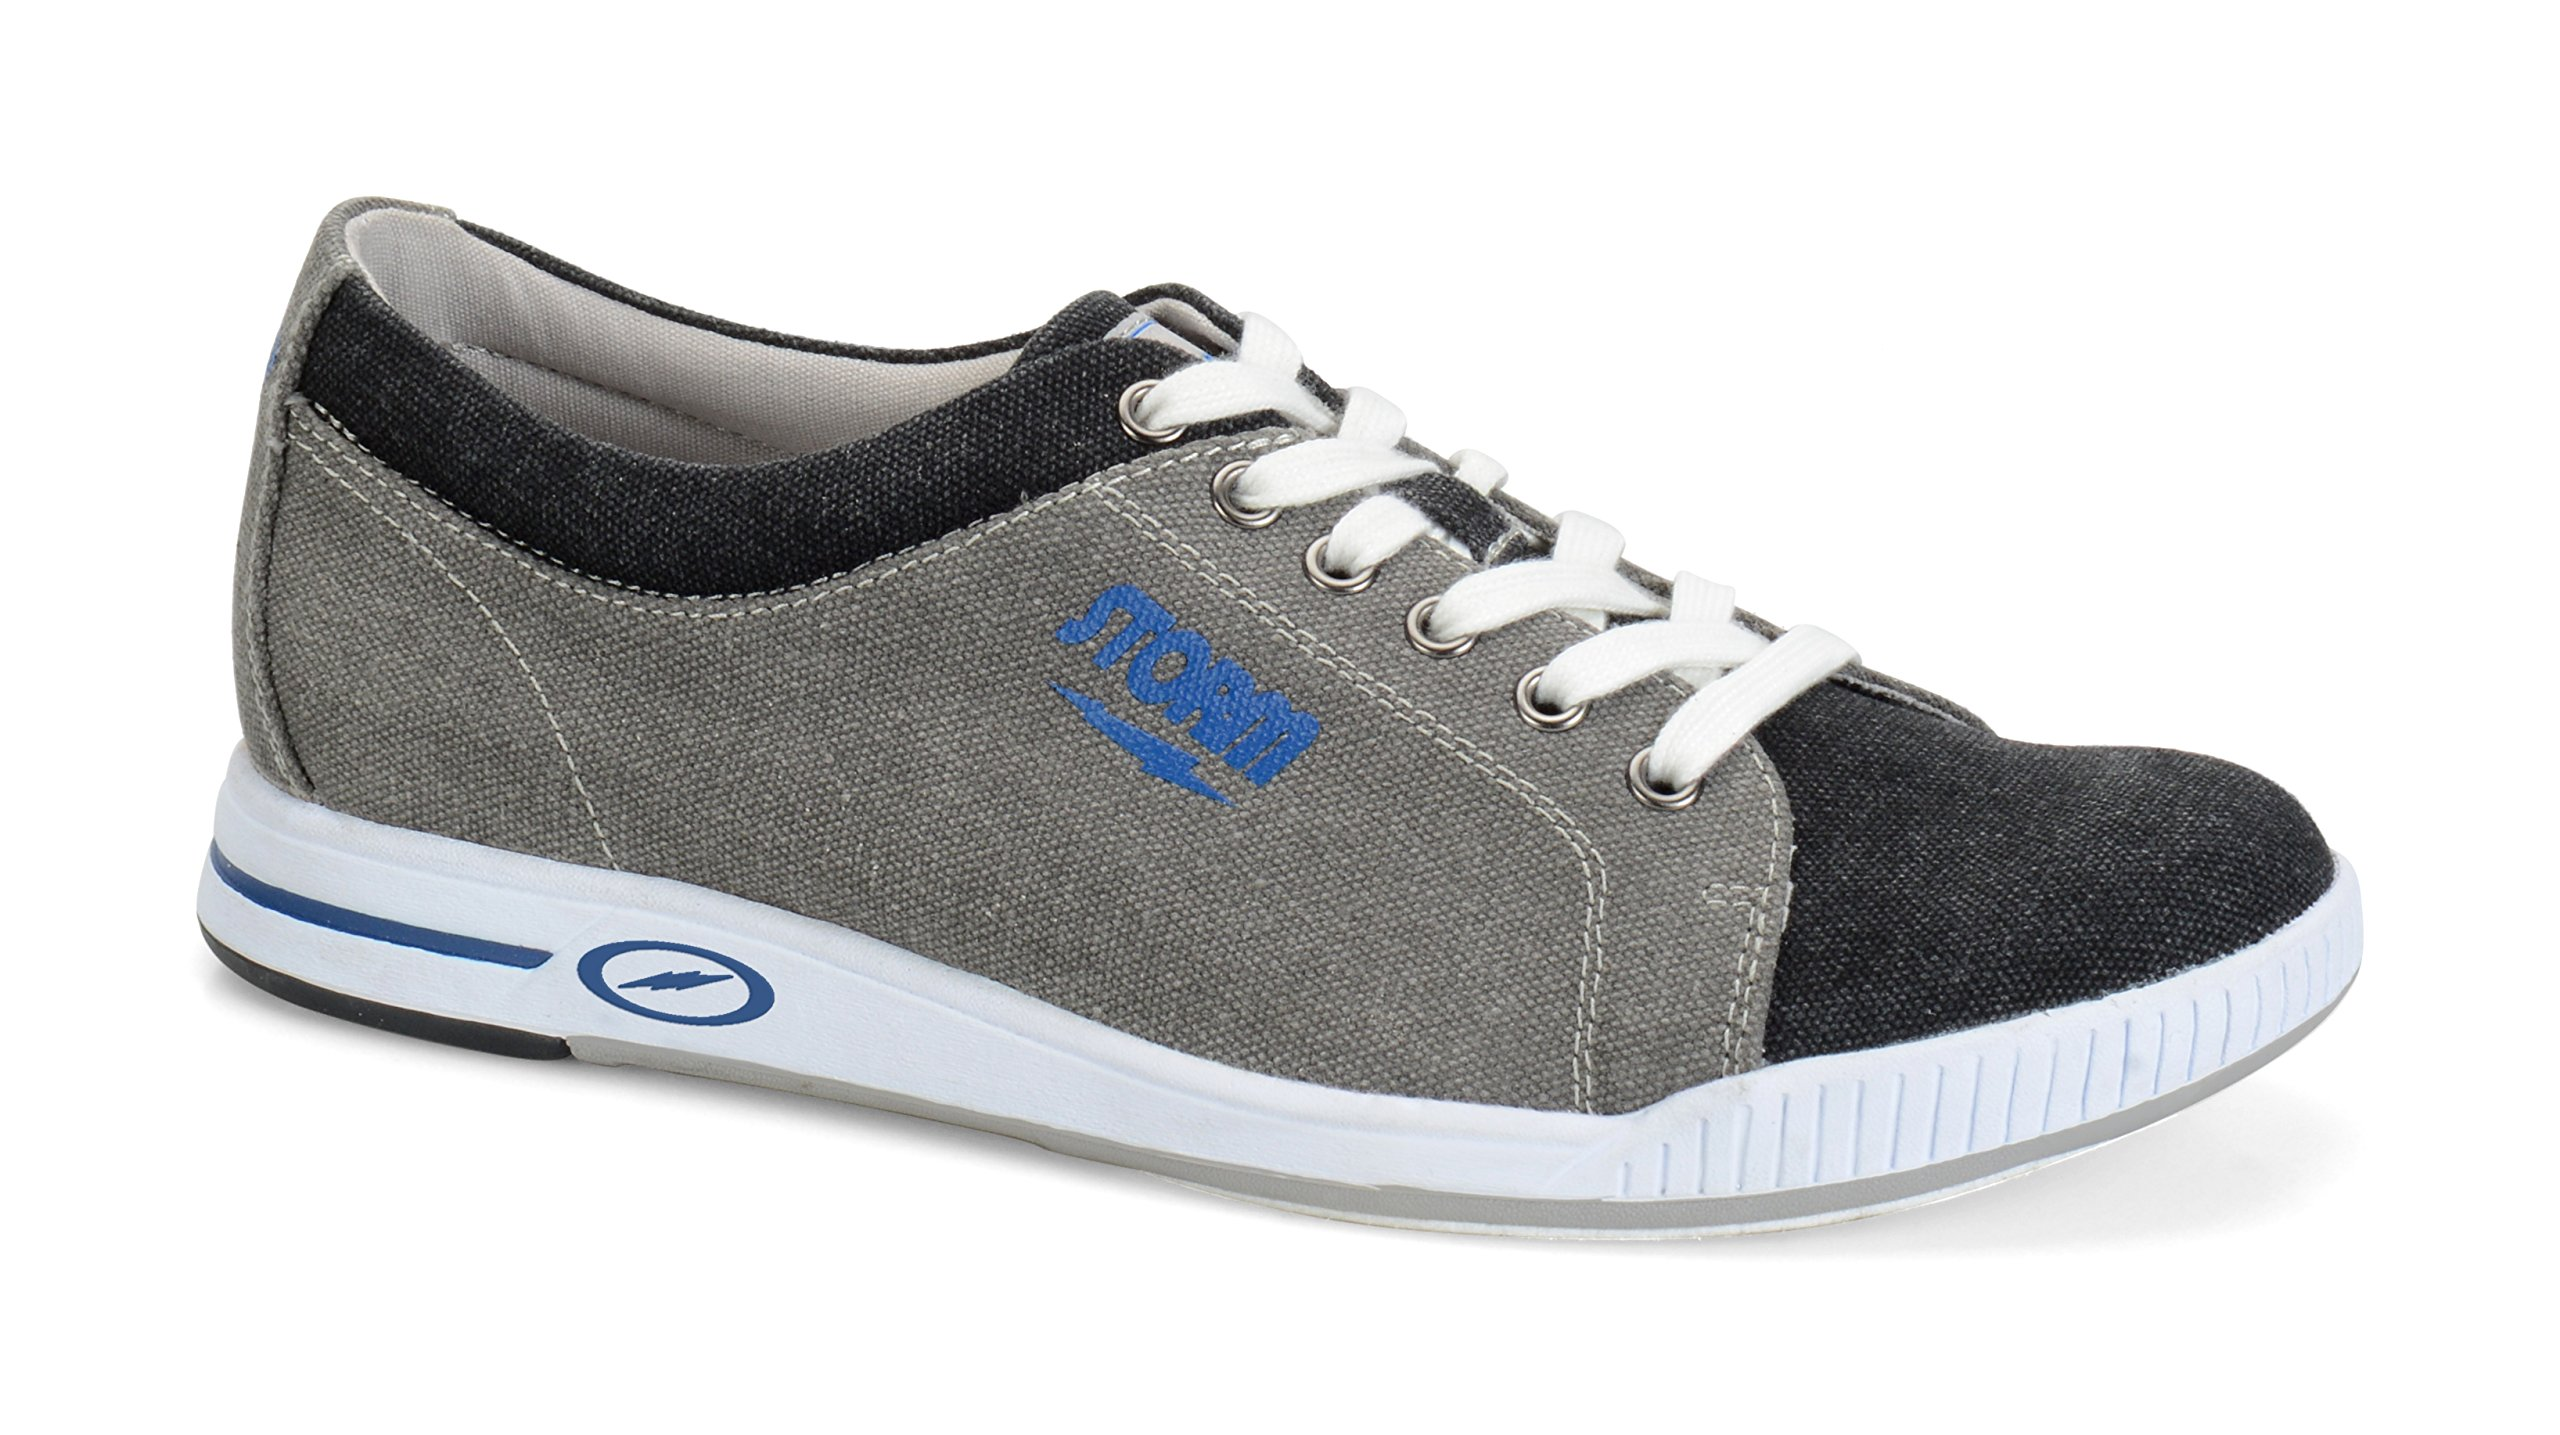 Storm Gust Bowling Shoes, Grey/Black/Blue, 9.5 by Storm